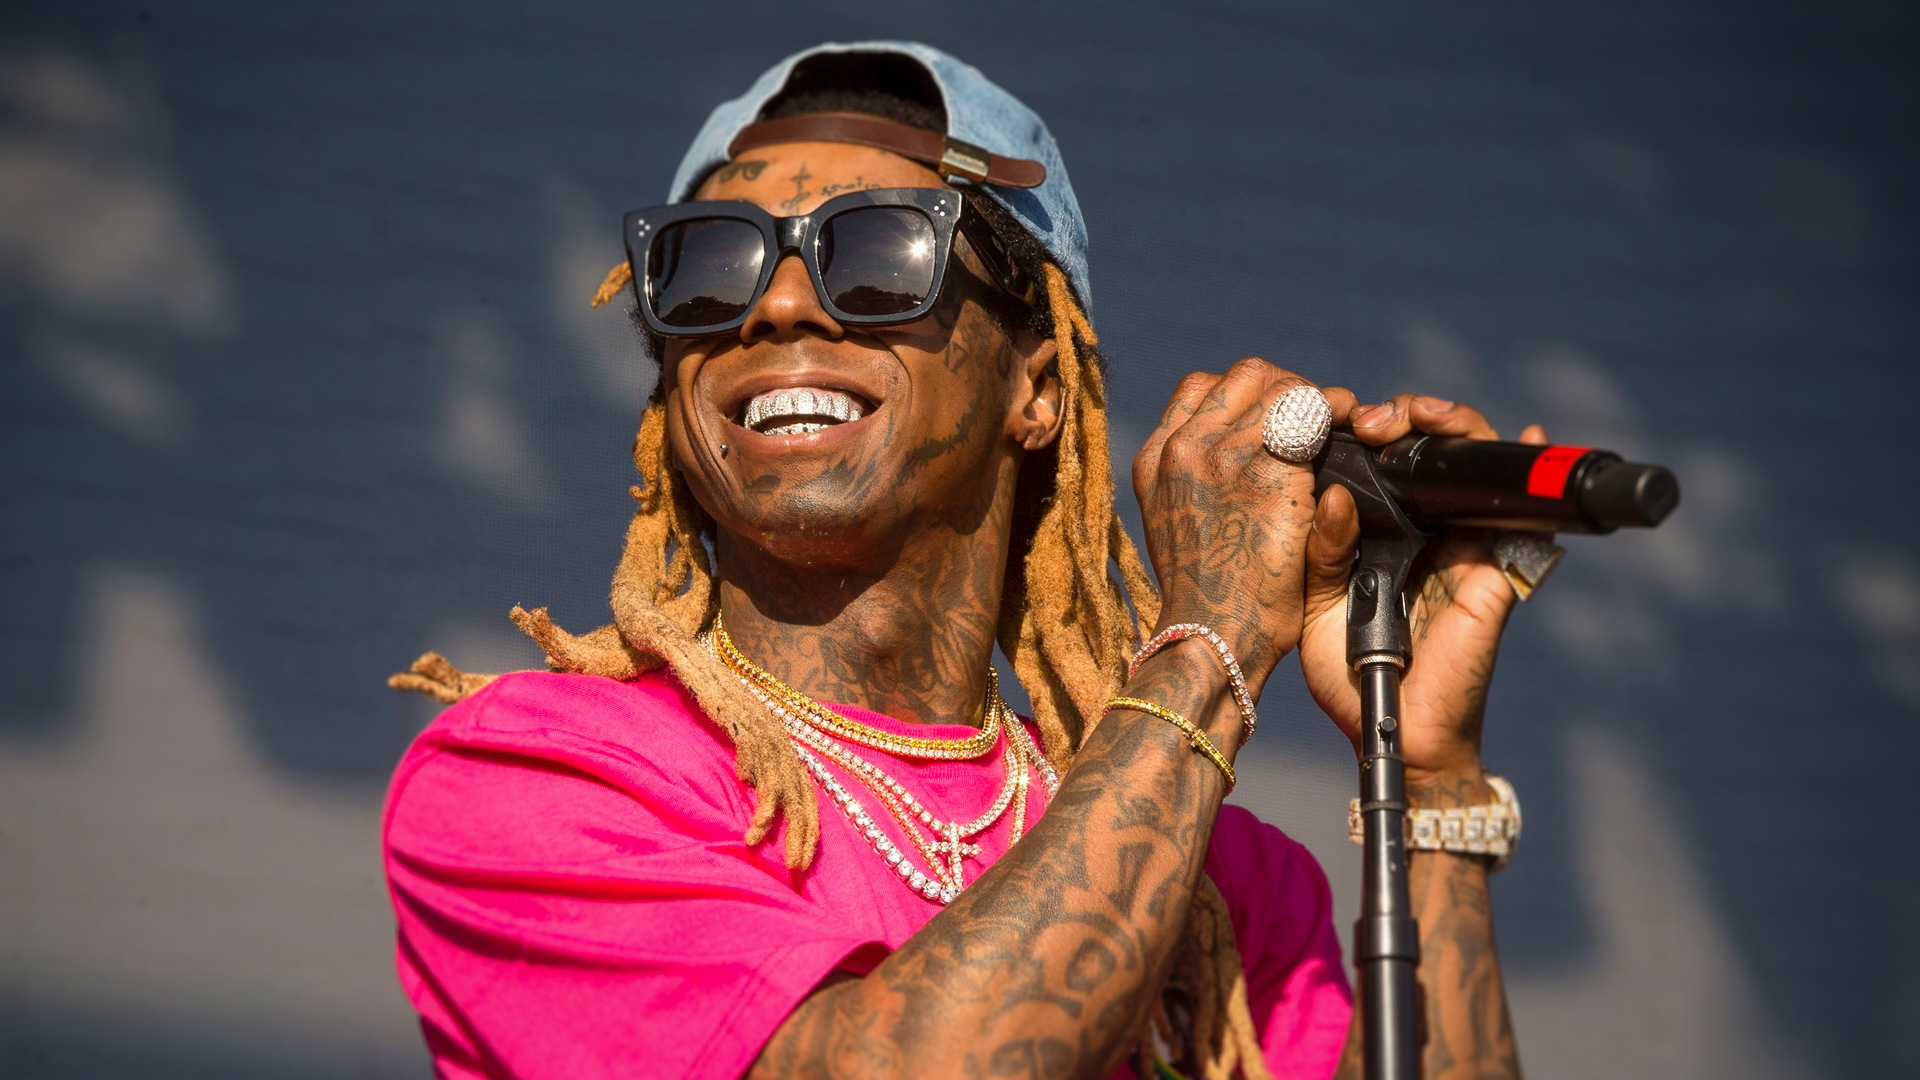 Lil Wayne Net Worth About to Soar With 'Young Money' Legal Win